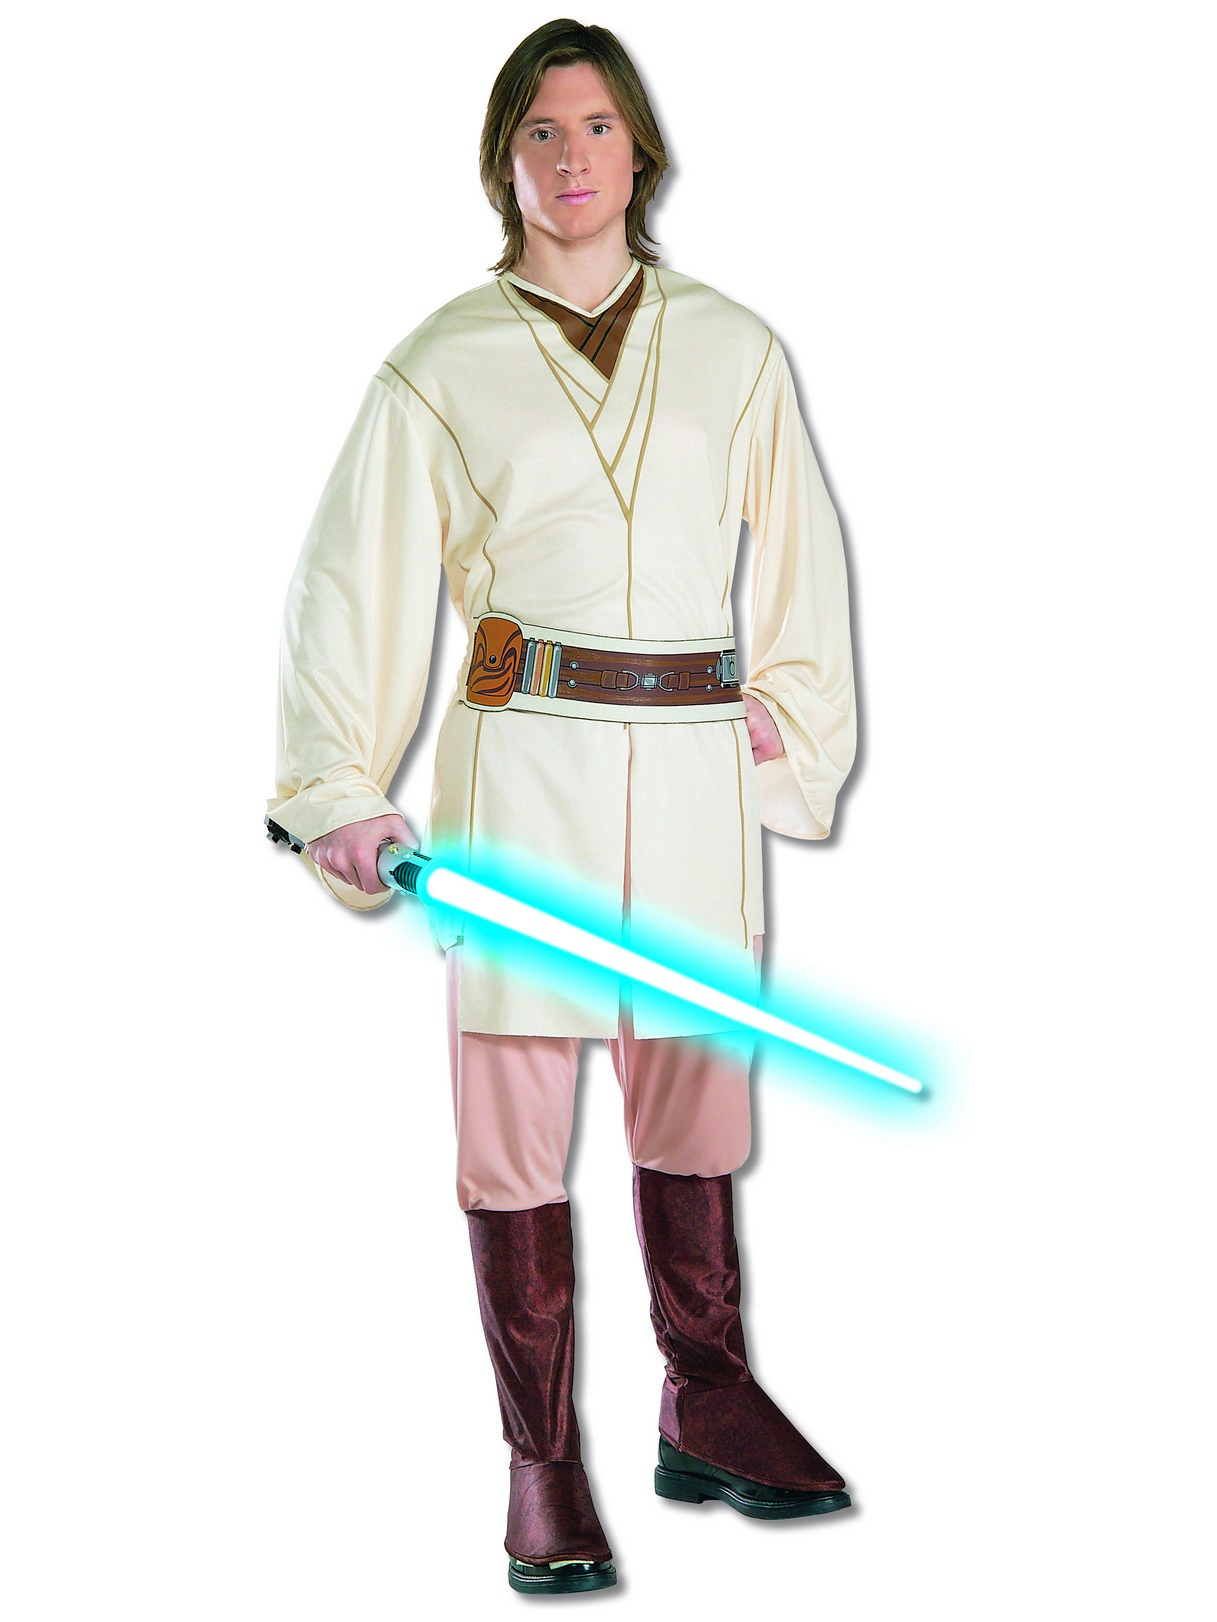 Would like Adult star wars costume